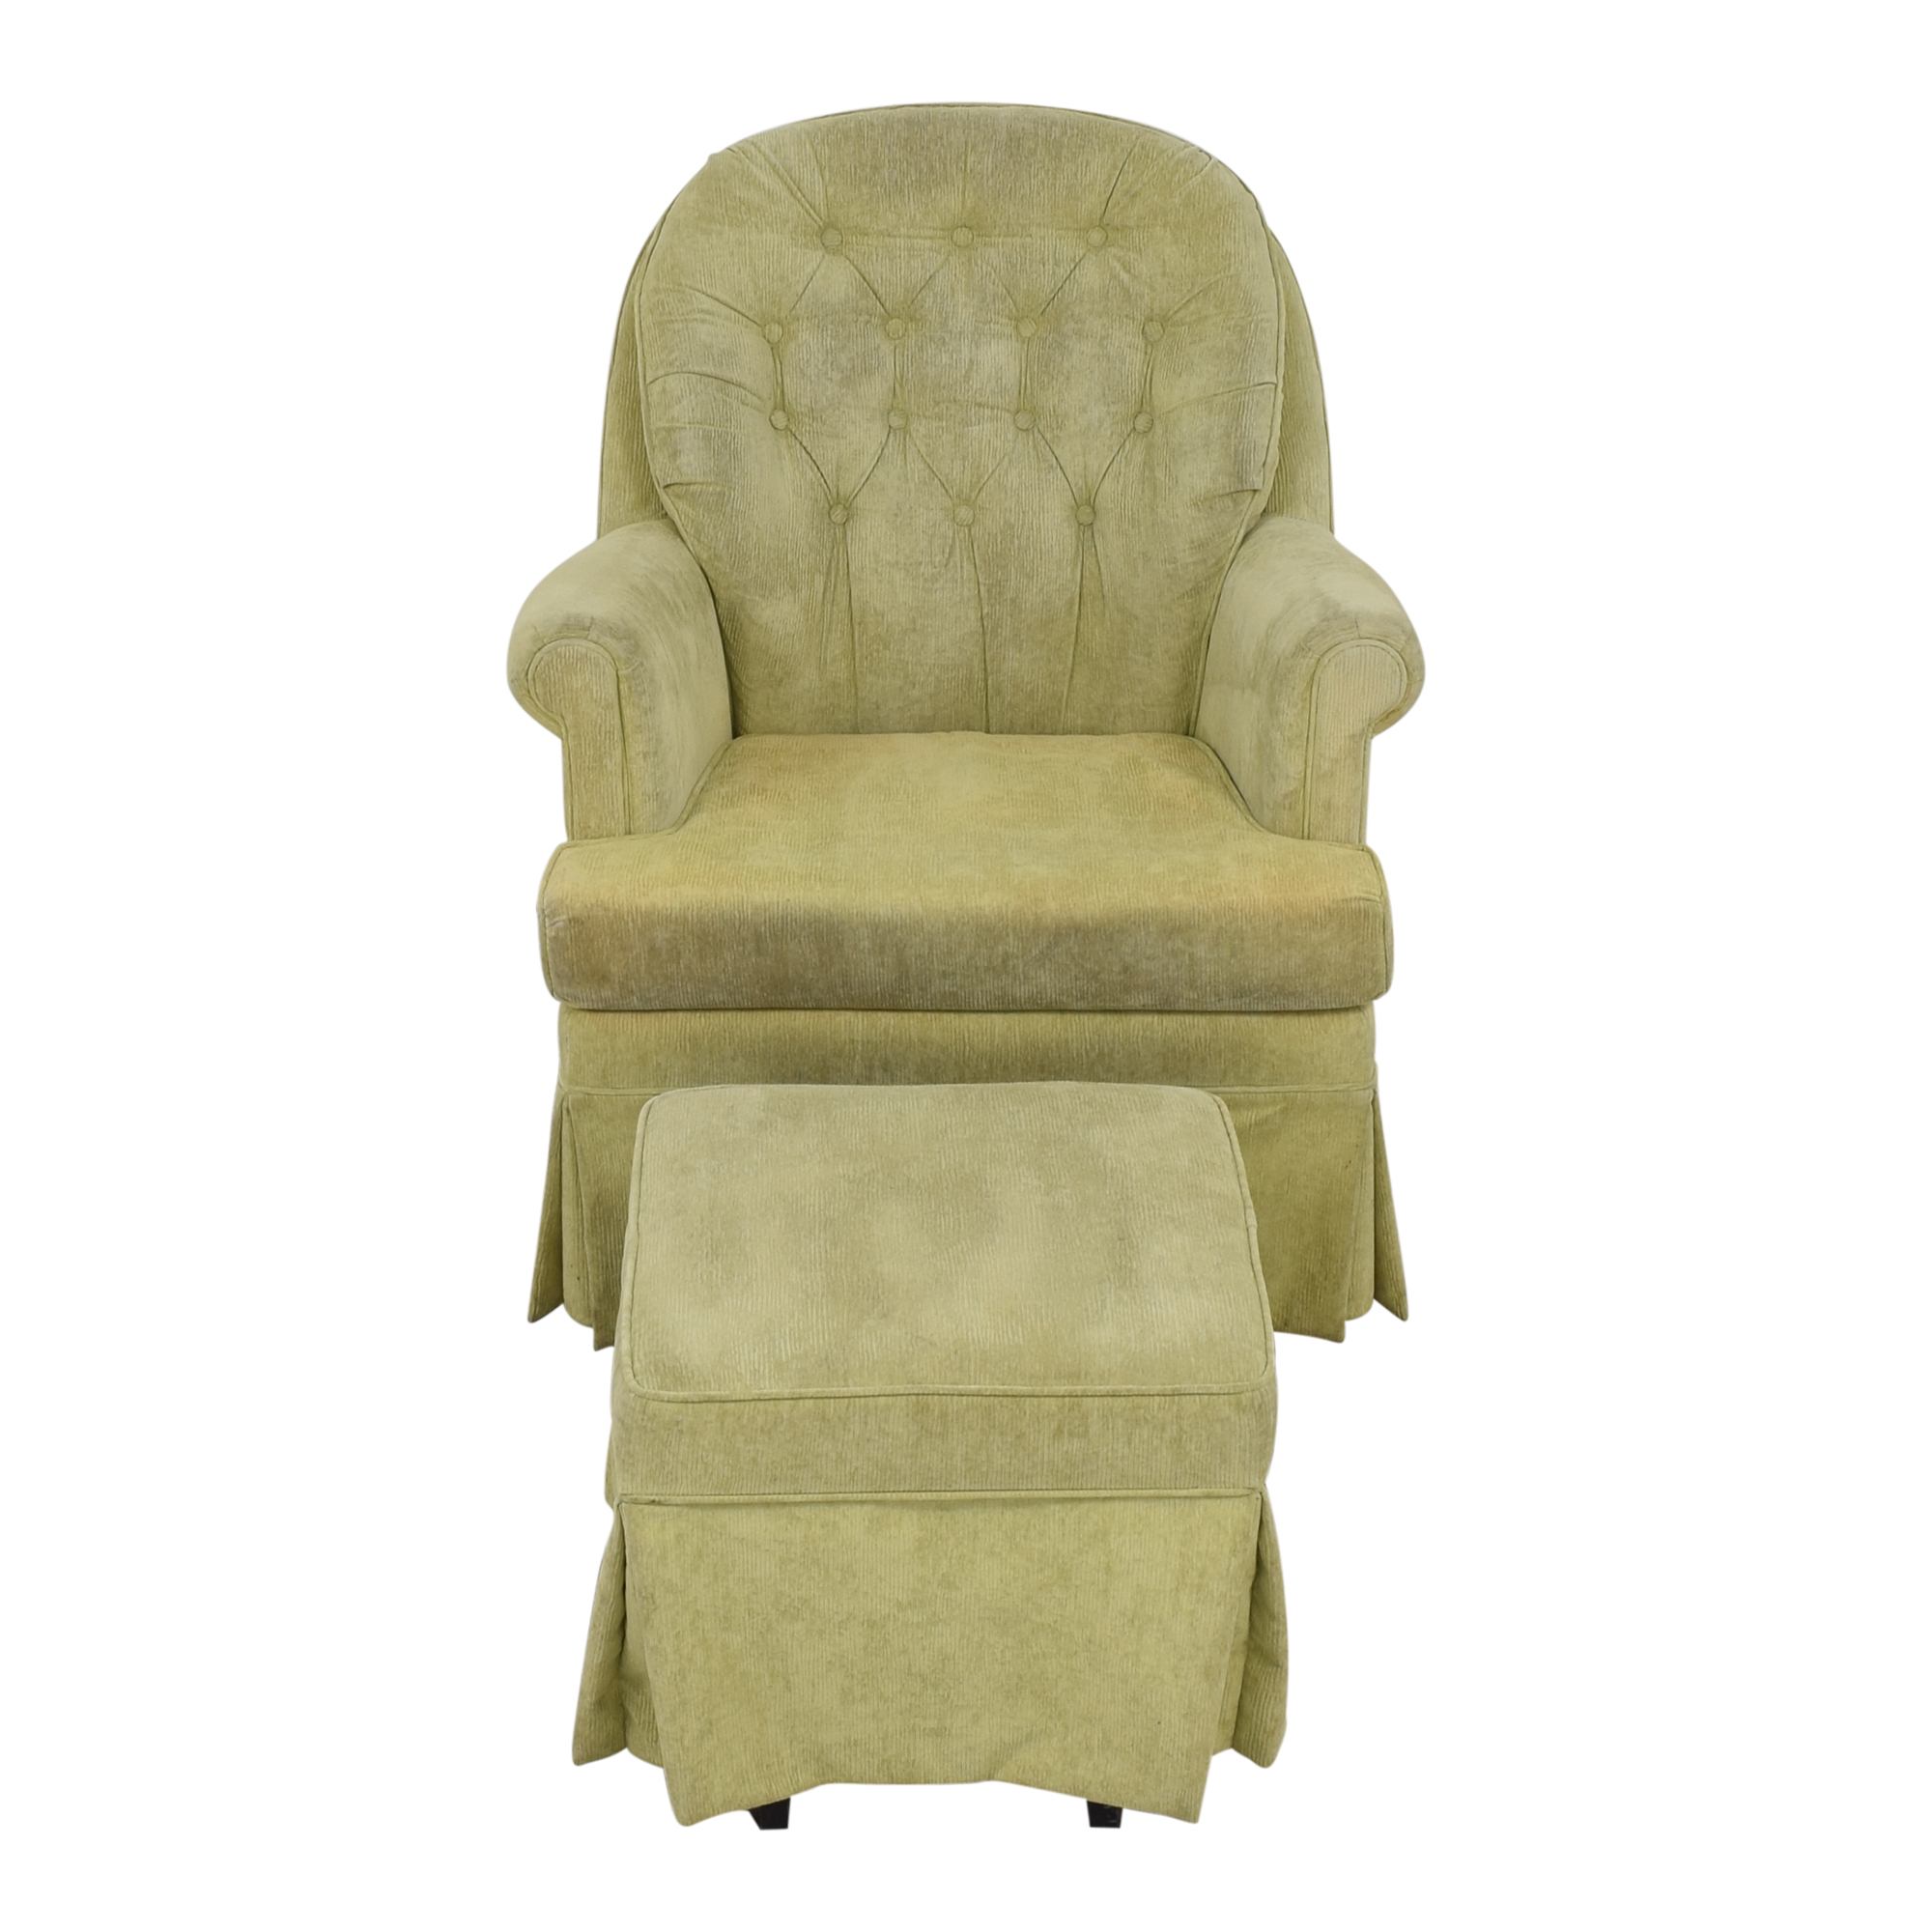 Babyletto Babyletto Nursery Glider and Gliding Ottoman Chairs